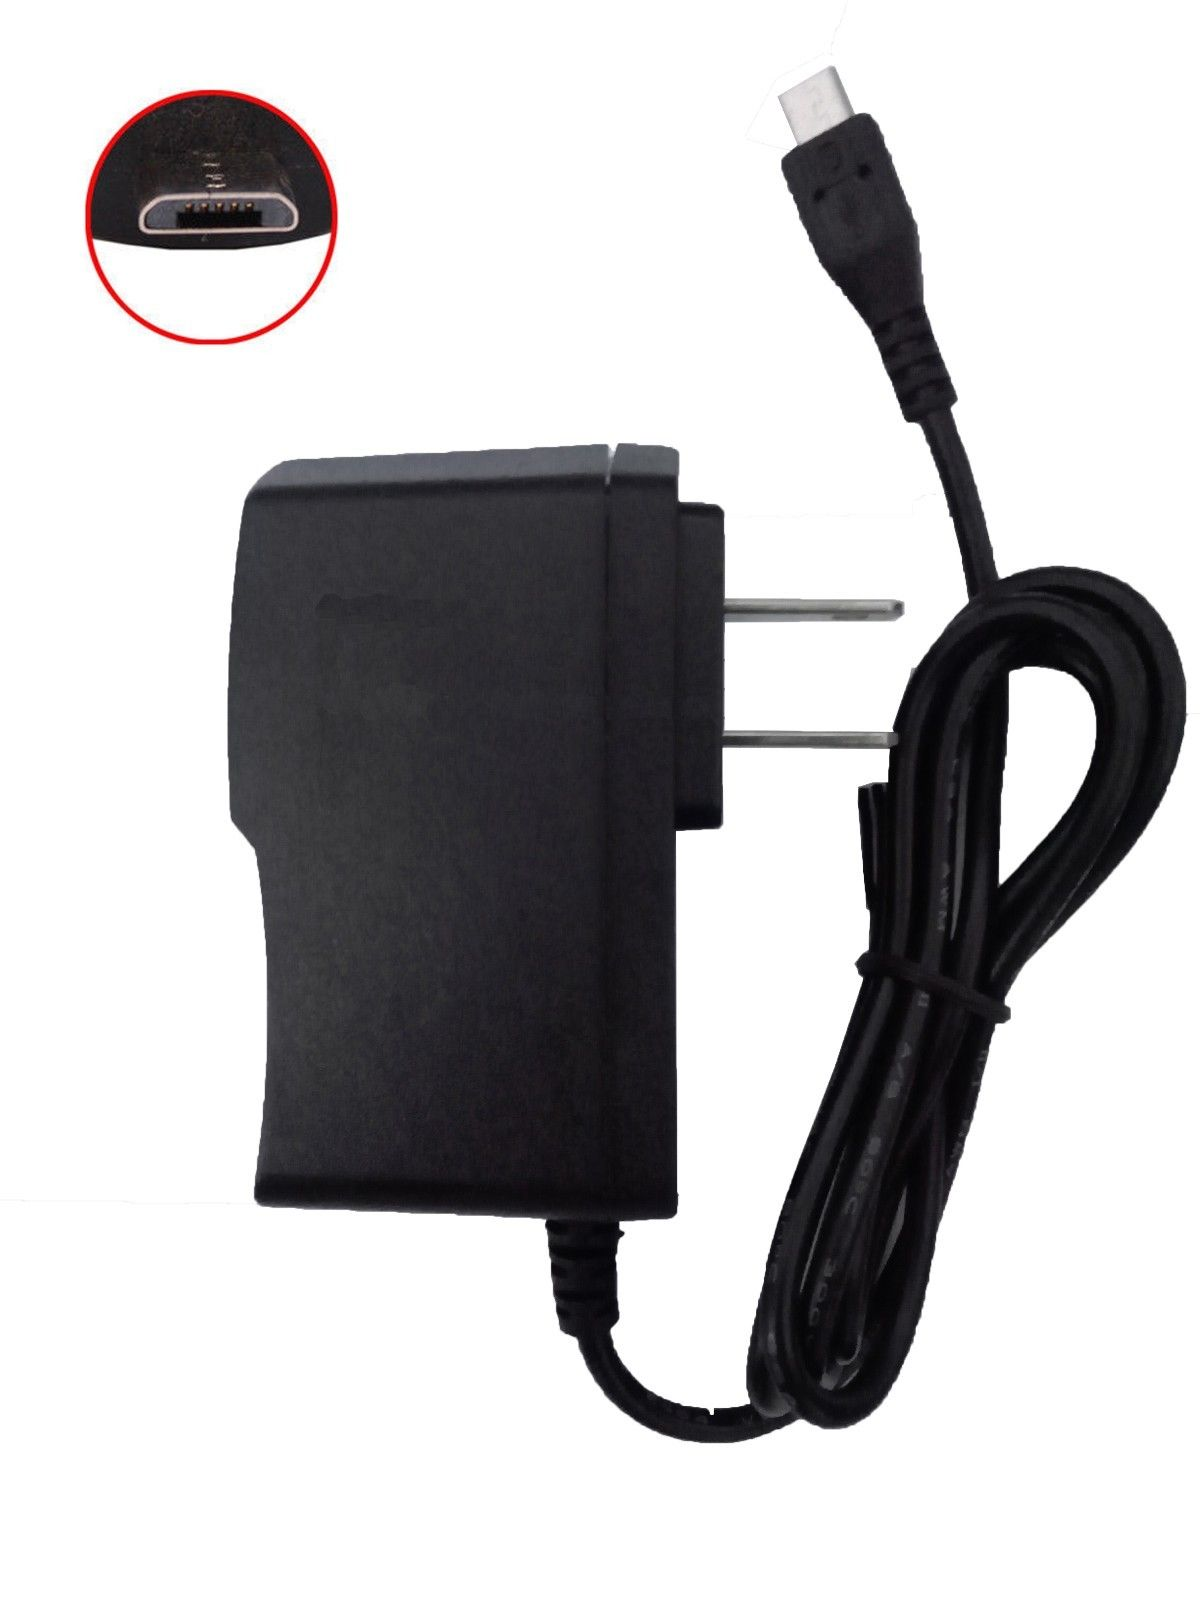 CHARGER 1A FOR Doro PhoneEasy 622,631,632,682